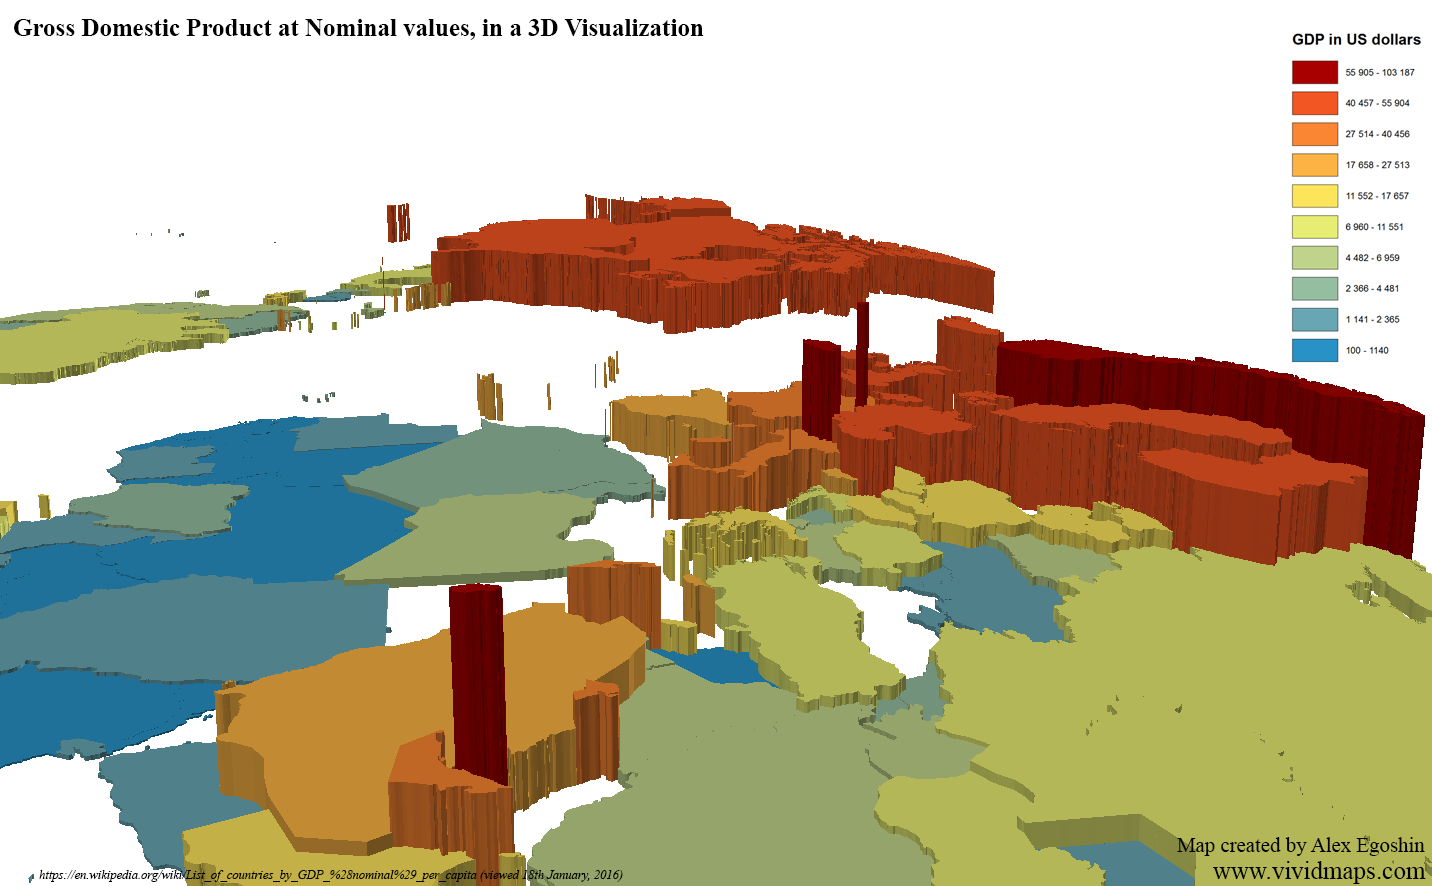 Gross Domestic Product at Nominal values in 3D Visualization